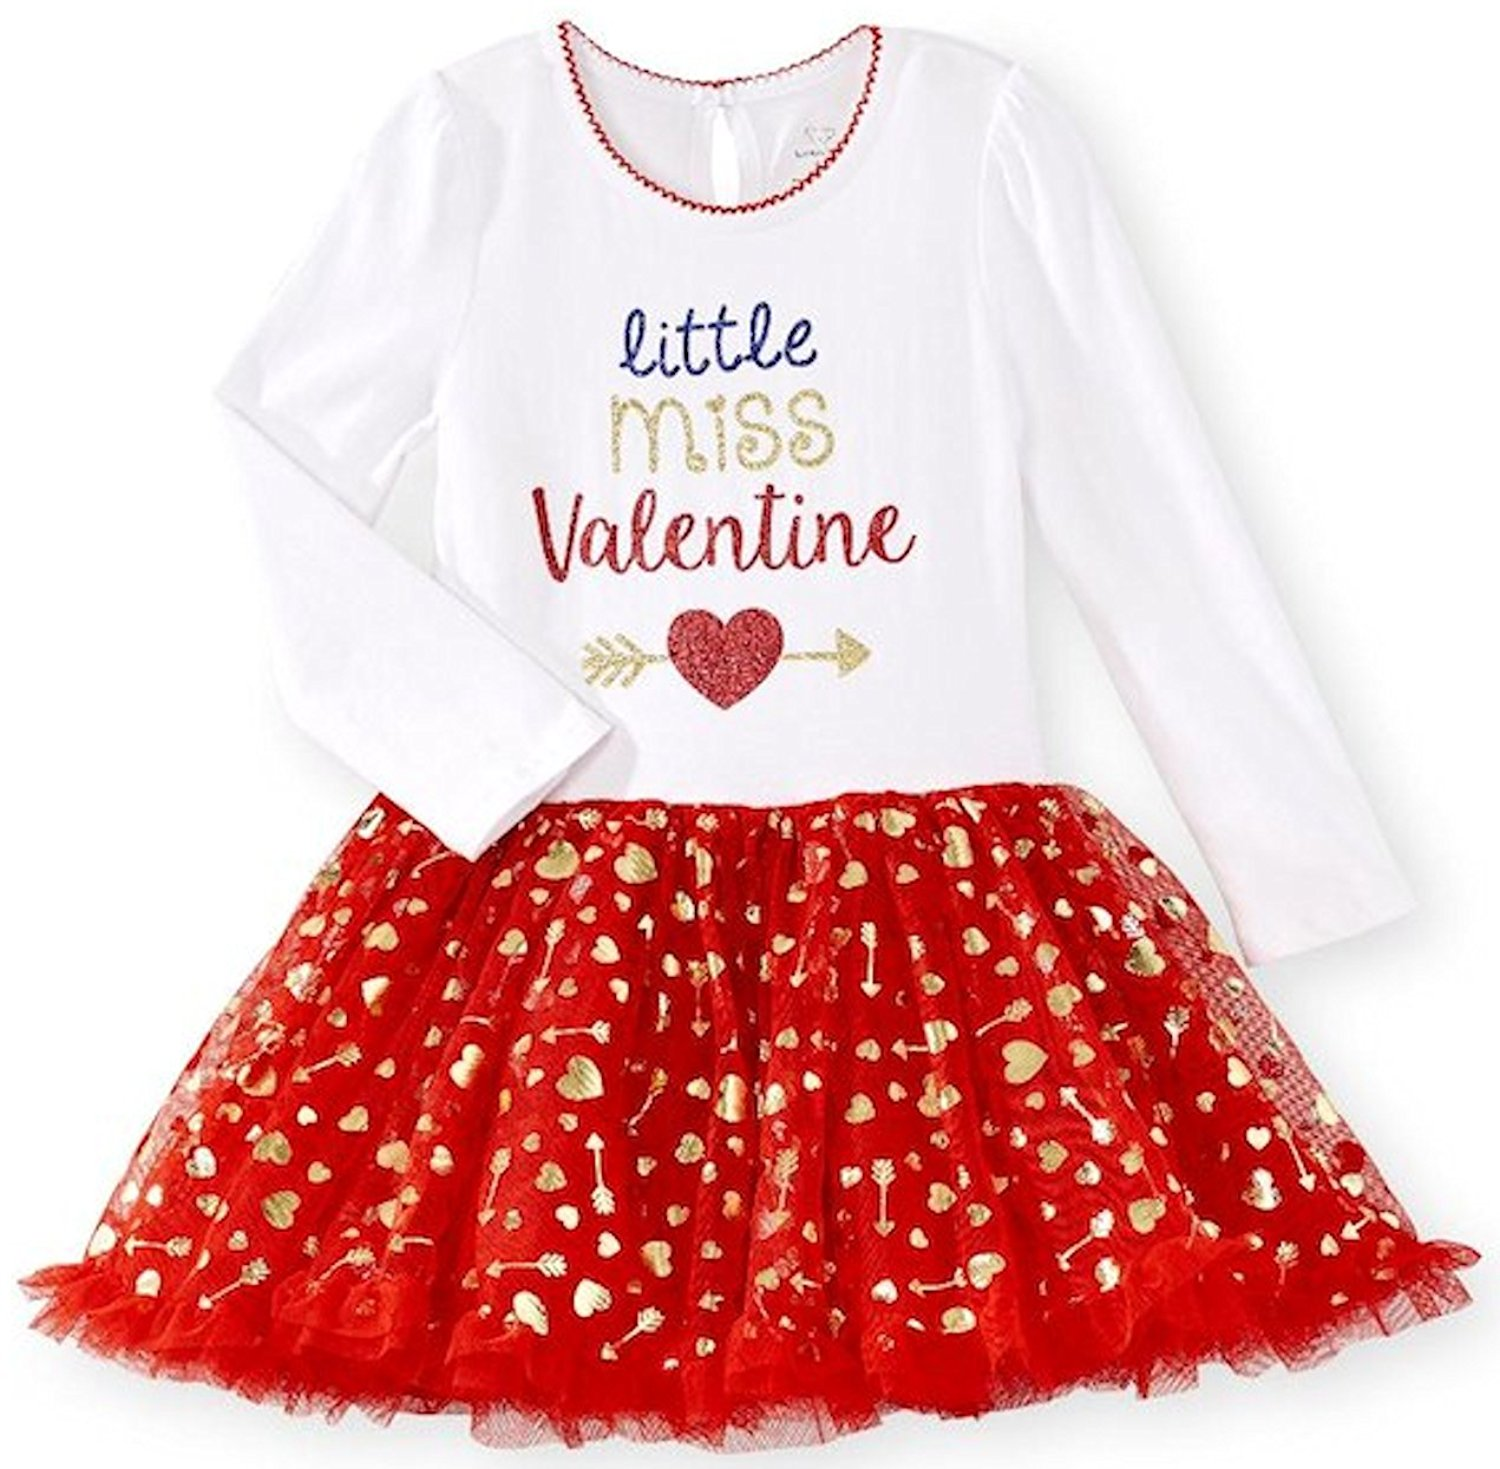 7944744ad446 Get Quotations · Koala Kids Little Miss Valentine Valentine s Day Toddler  Little Girls Heart Tutu Dress